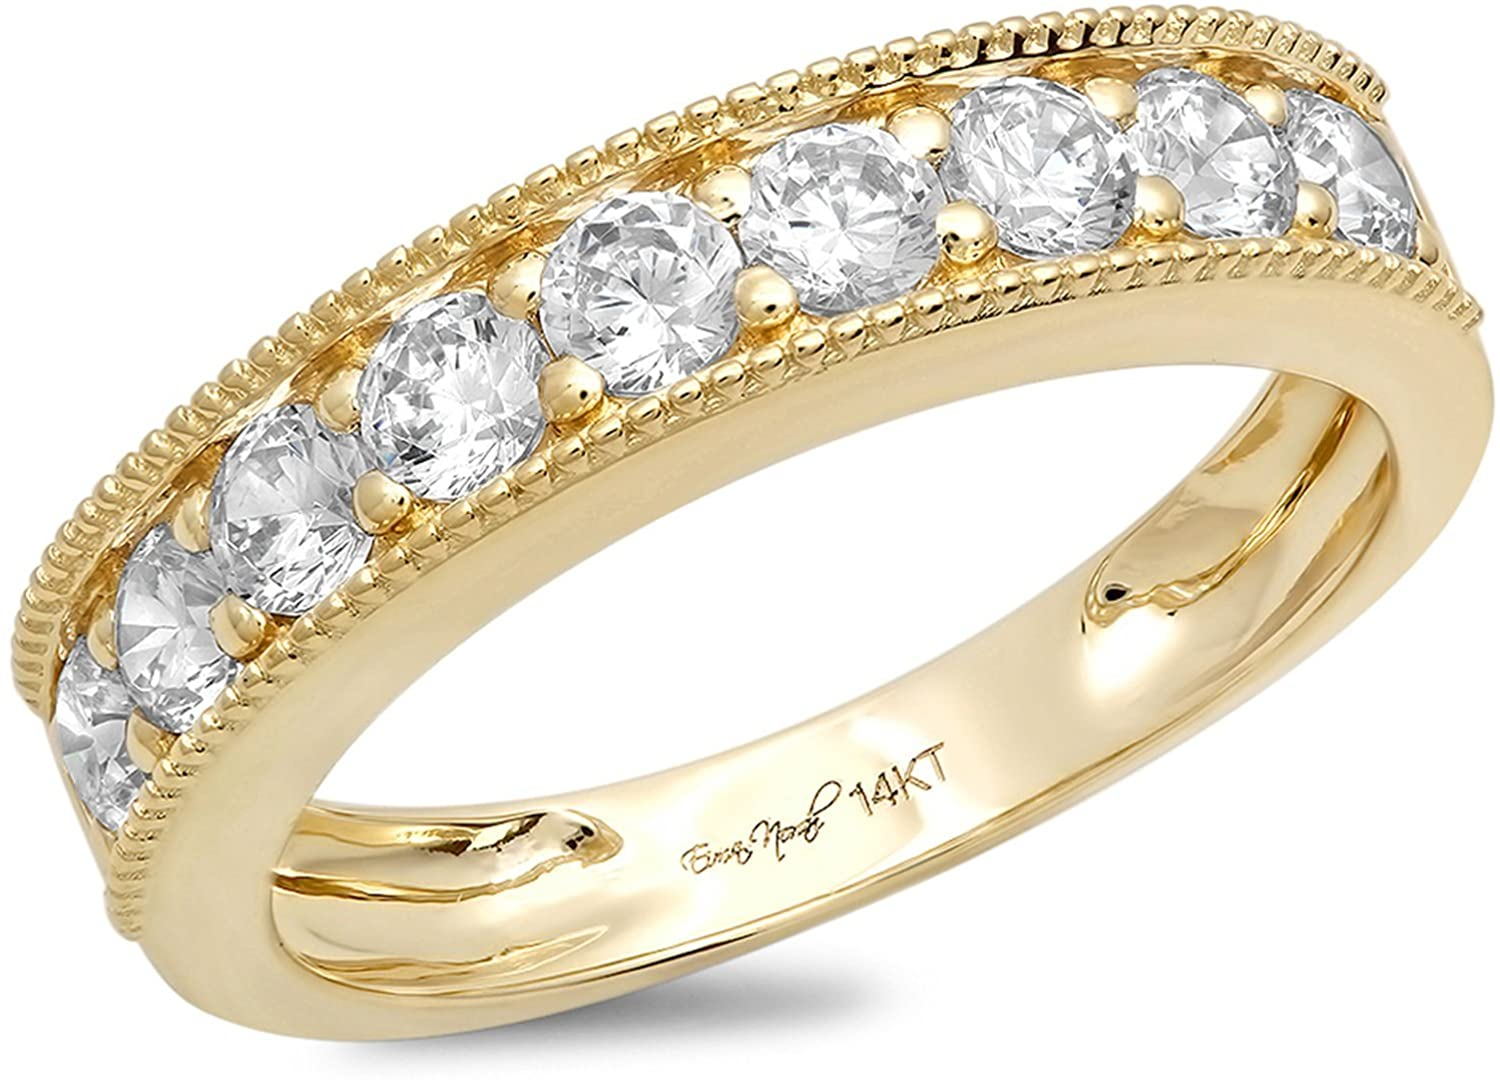 Clara Pucci 1.2 Ct Round Cut Unisex Pave Engagement Promise Wedding Bridal Anniversary Ring Band 14K Yellow Gold